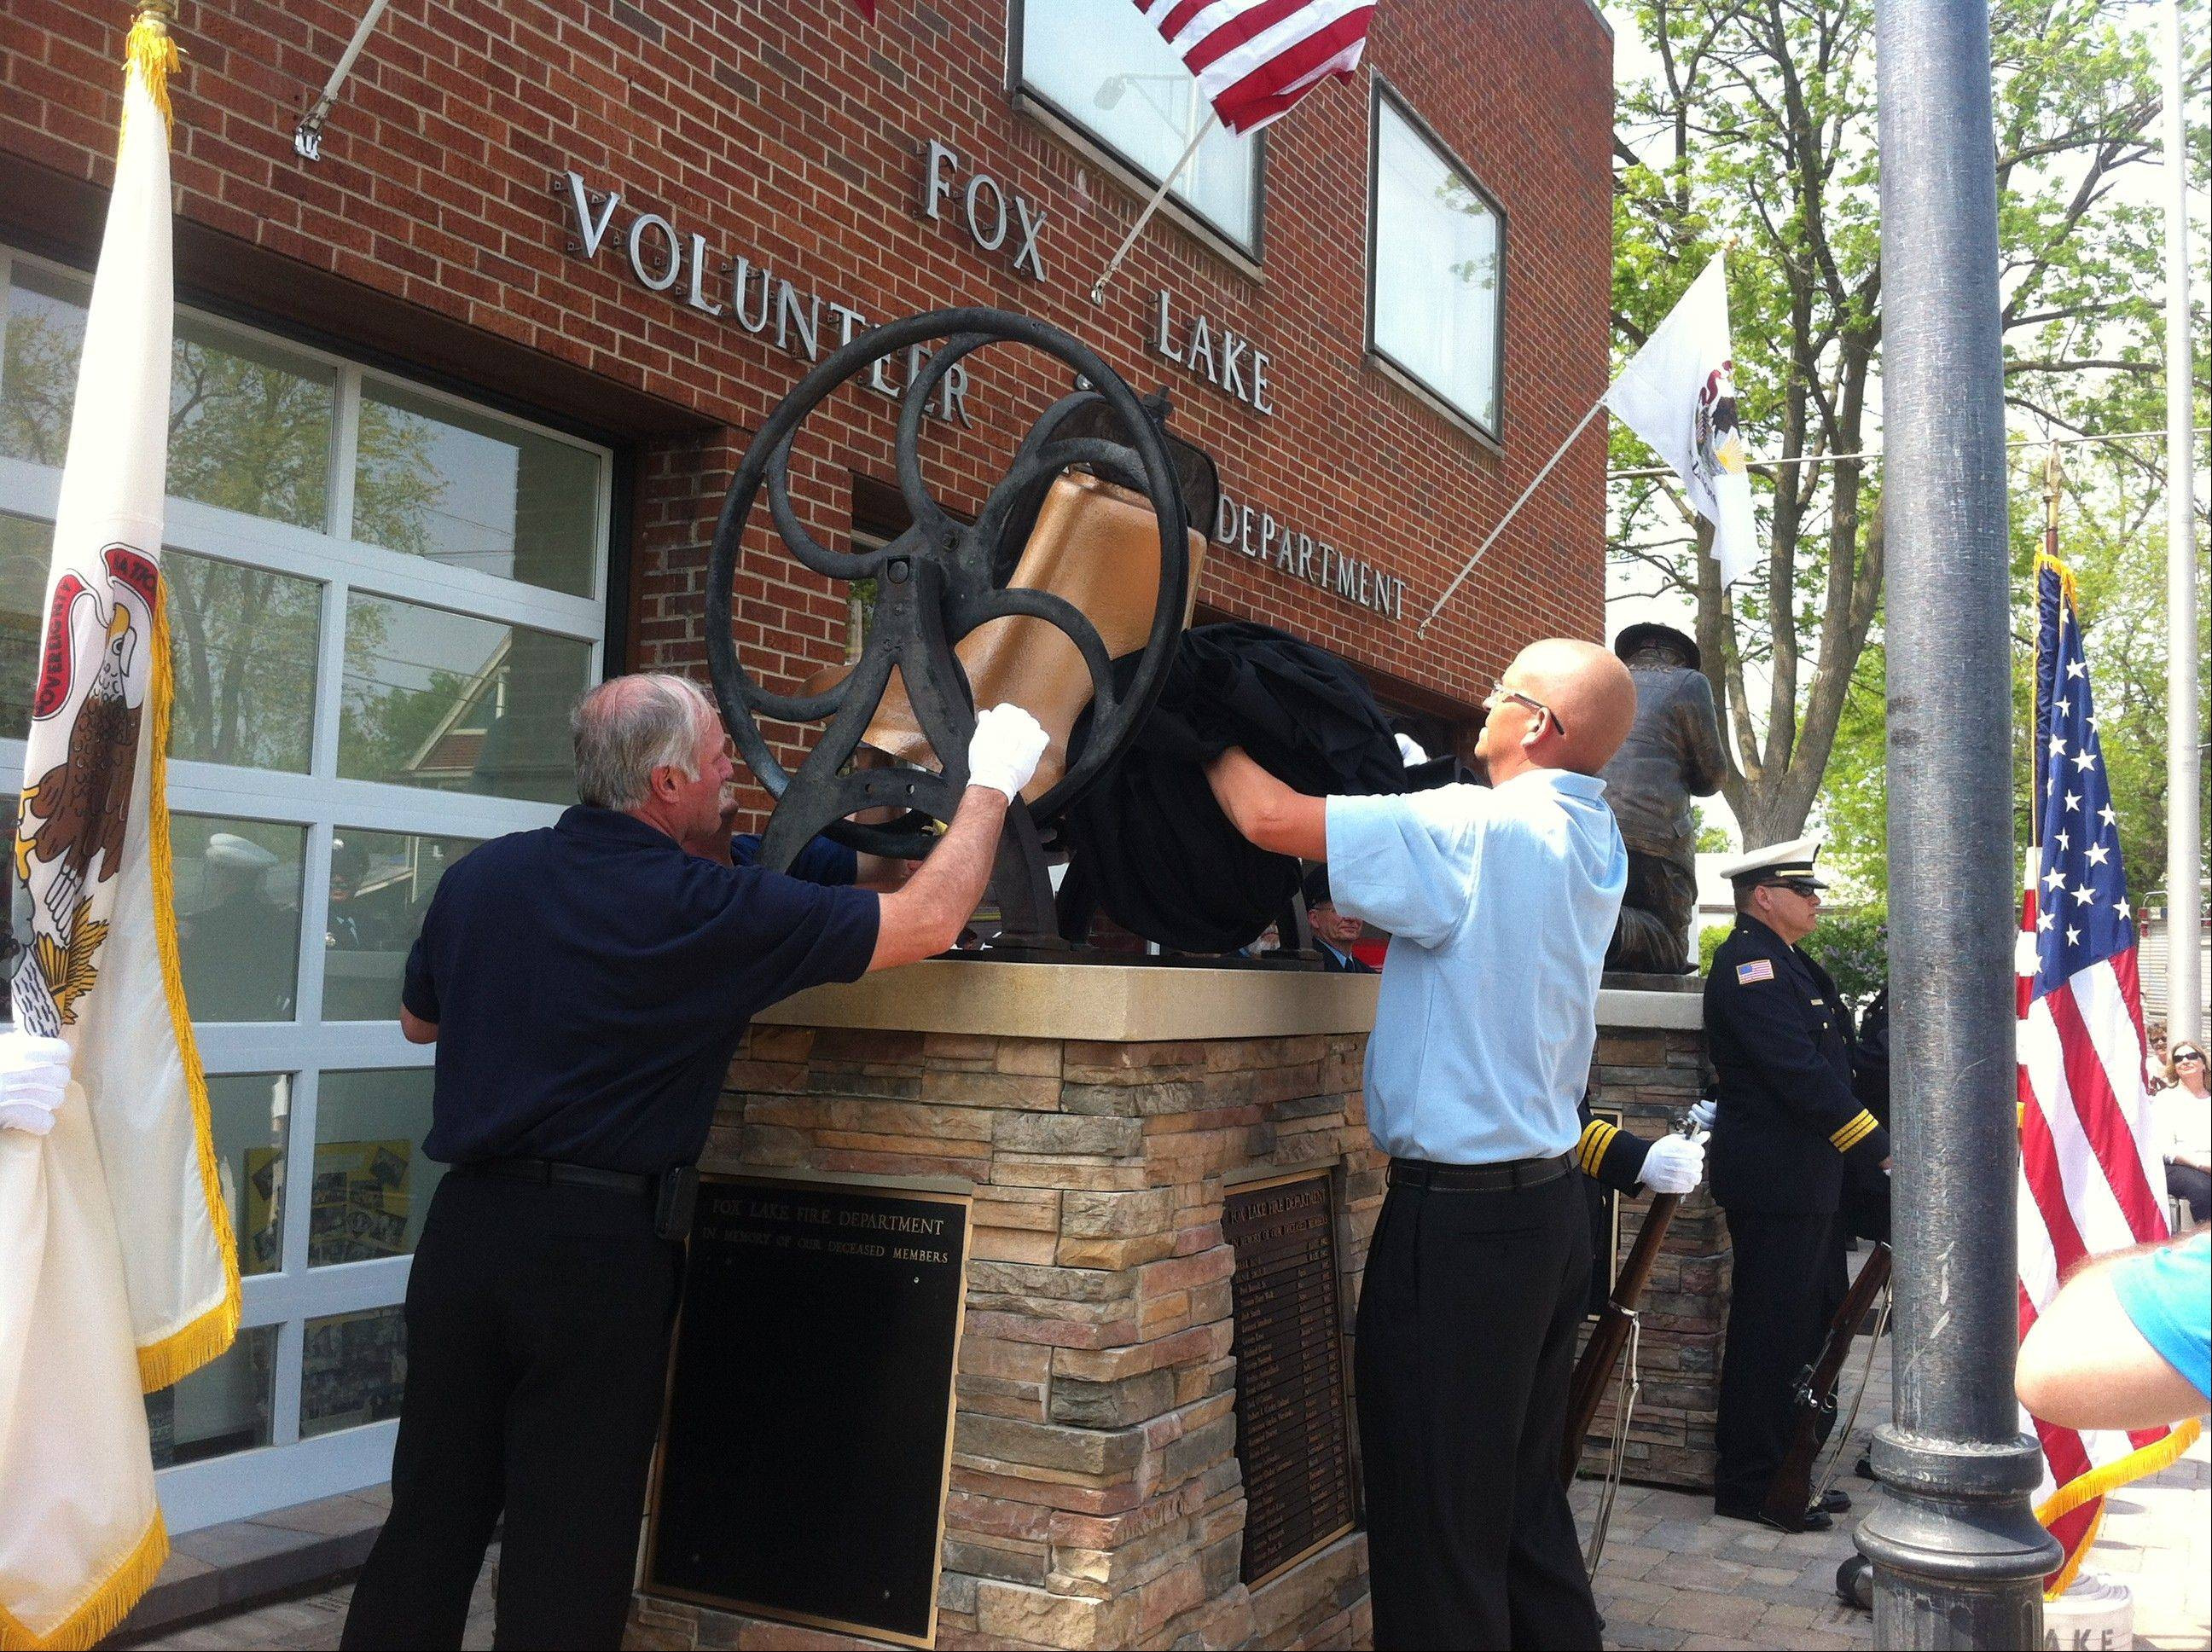 Volunteer Fox Lake firefighters unveil a memorial to former firefighters Sunday afternoon.